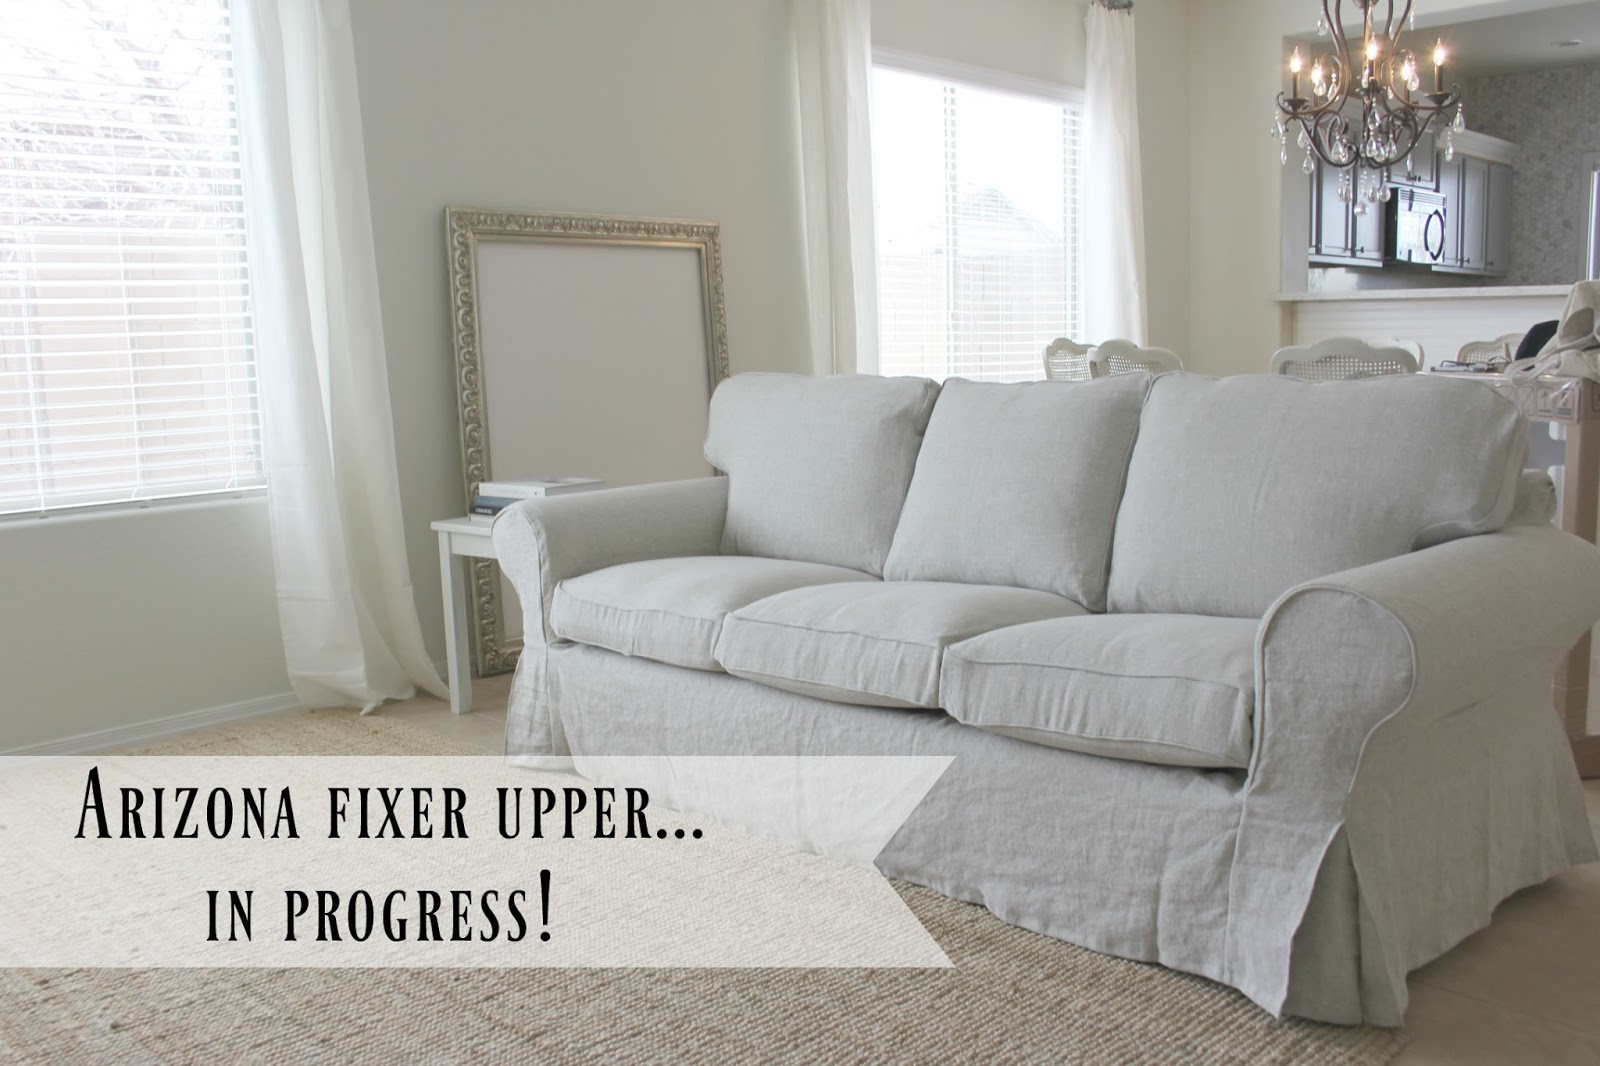 lovely ikea living room | My Ektorp Sofas Get a Luxurious Ikea Hack from BEMZ ...